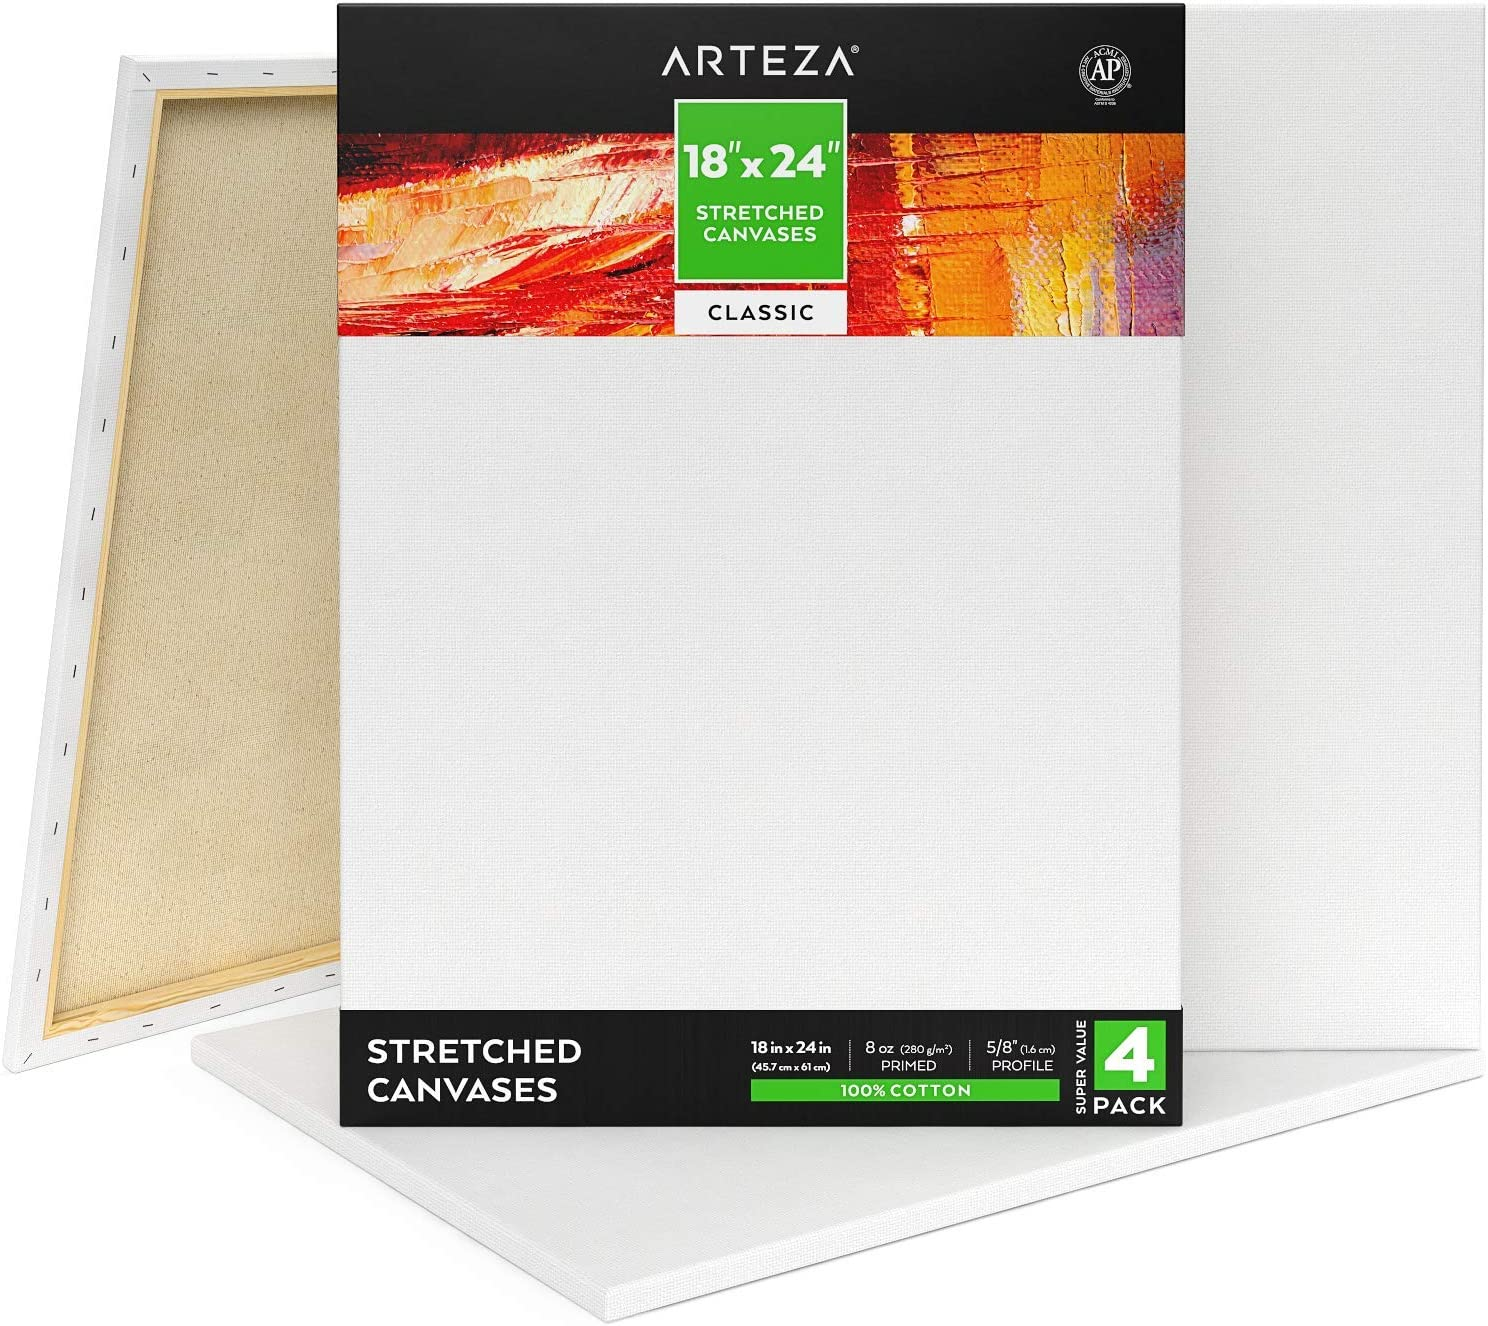 """ARTEZA 18x24"""" Stretched White Blank Canvas, Pack of 4, Primed, 100% Cotton, Acrylic Pouring, Oil Paint & Wet Art Media, Canvases for Professional Artist, Hobby Painters (Class - 4 Pack)"""